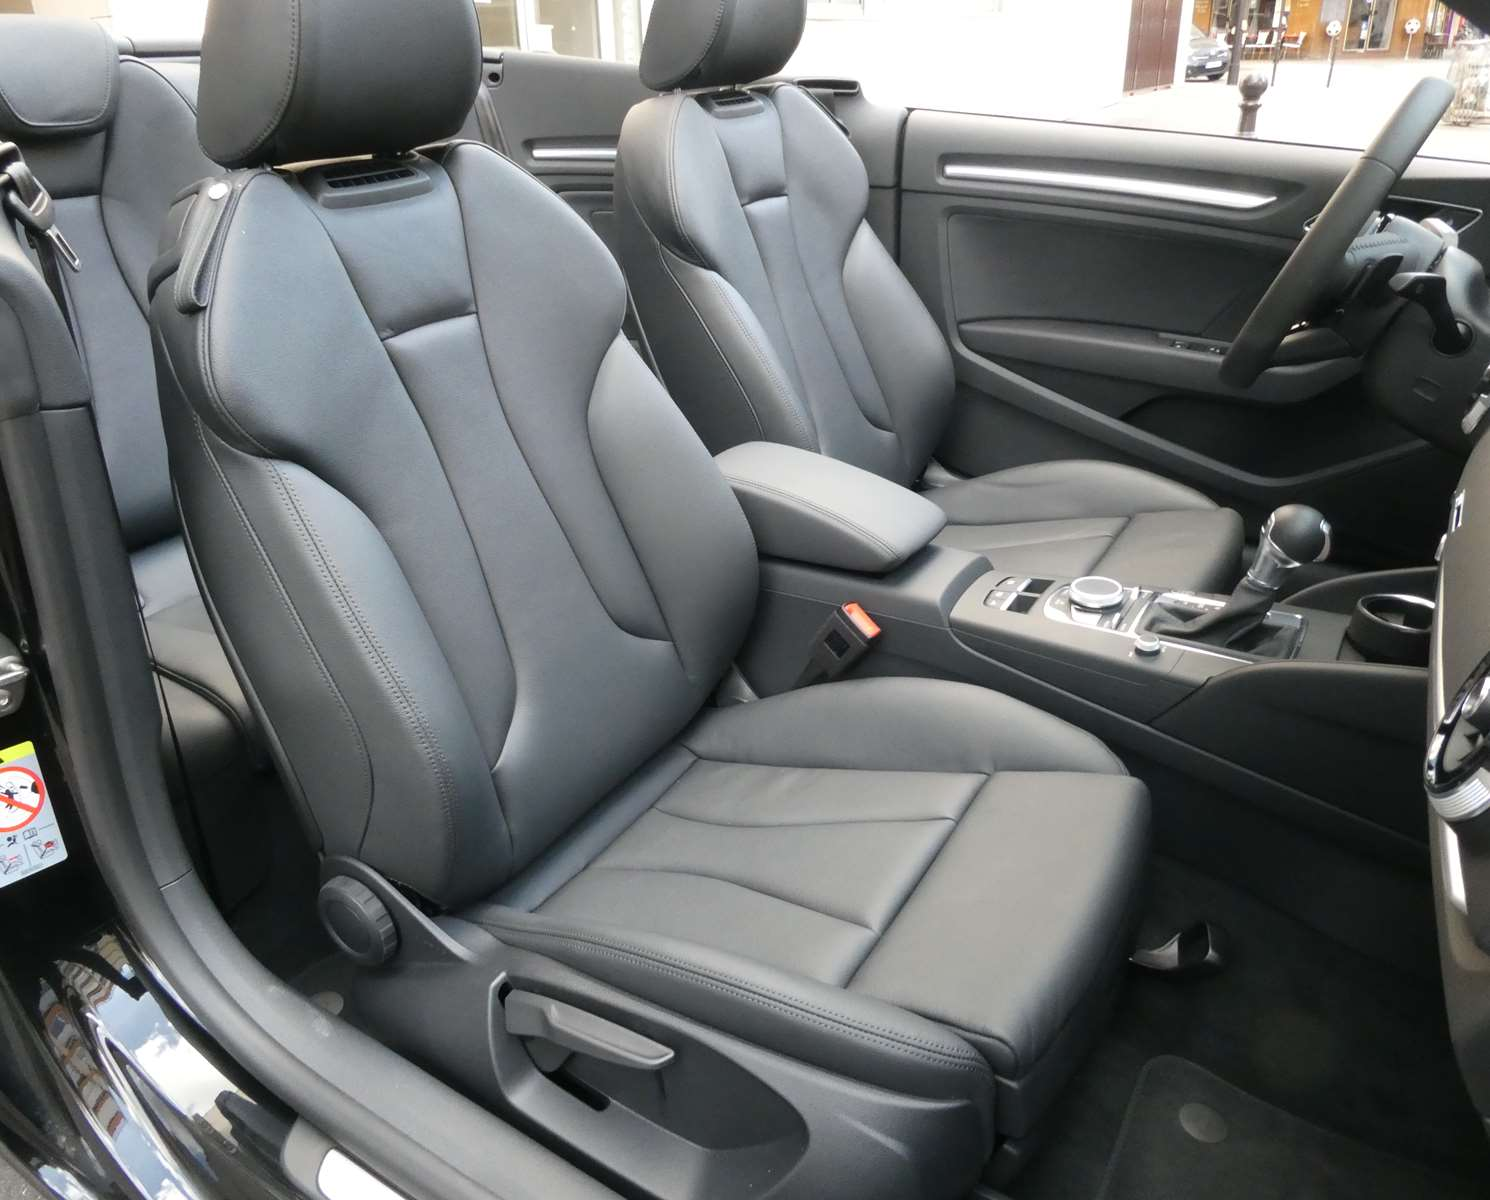 Audi A3 (2) cabriolet 35 TFSI 150 Design luxe S tronic 7 15